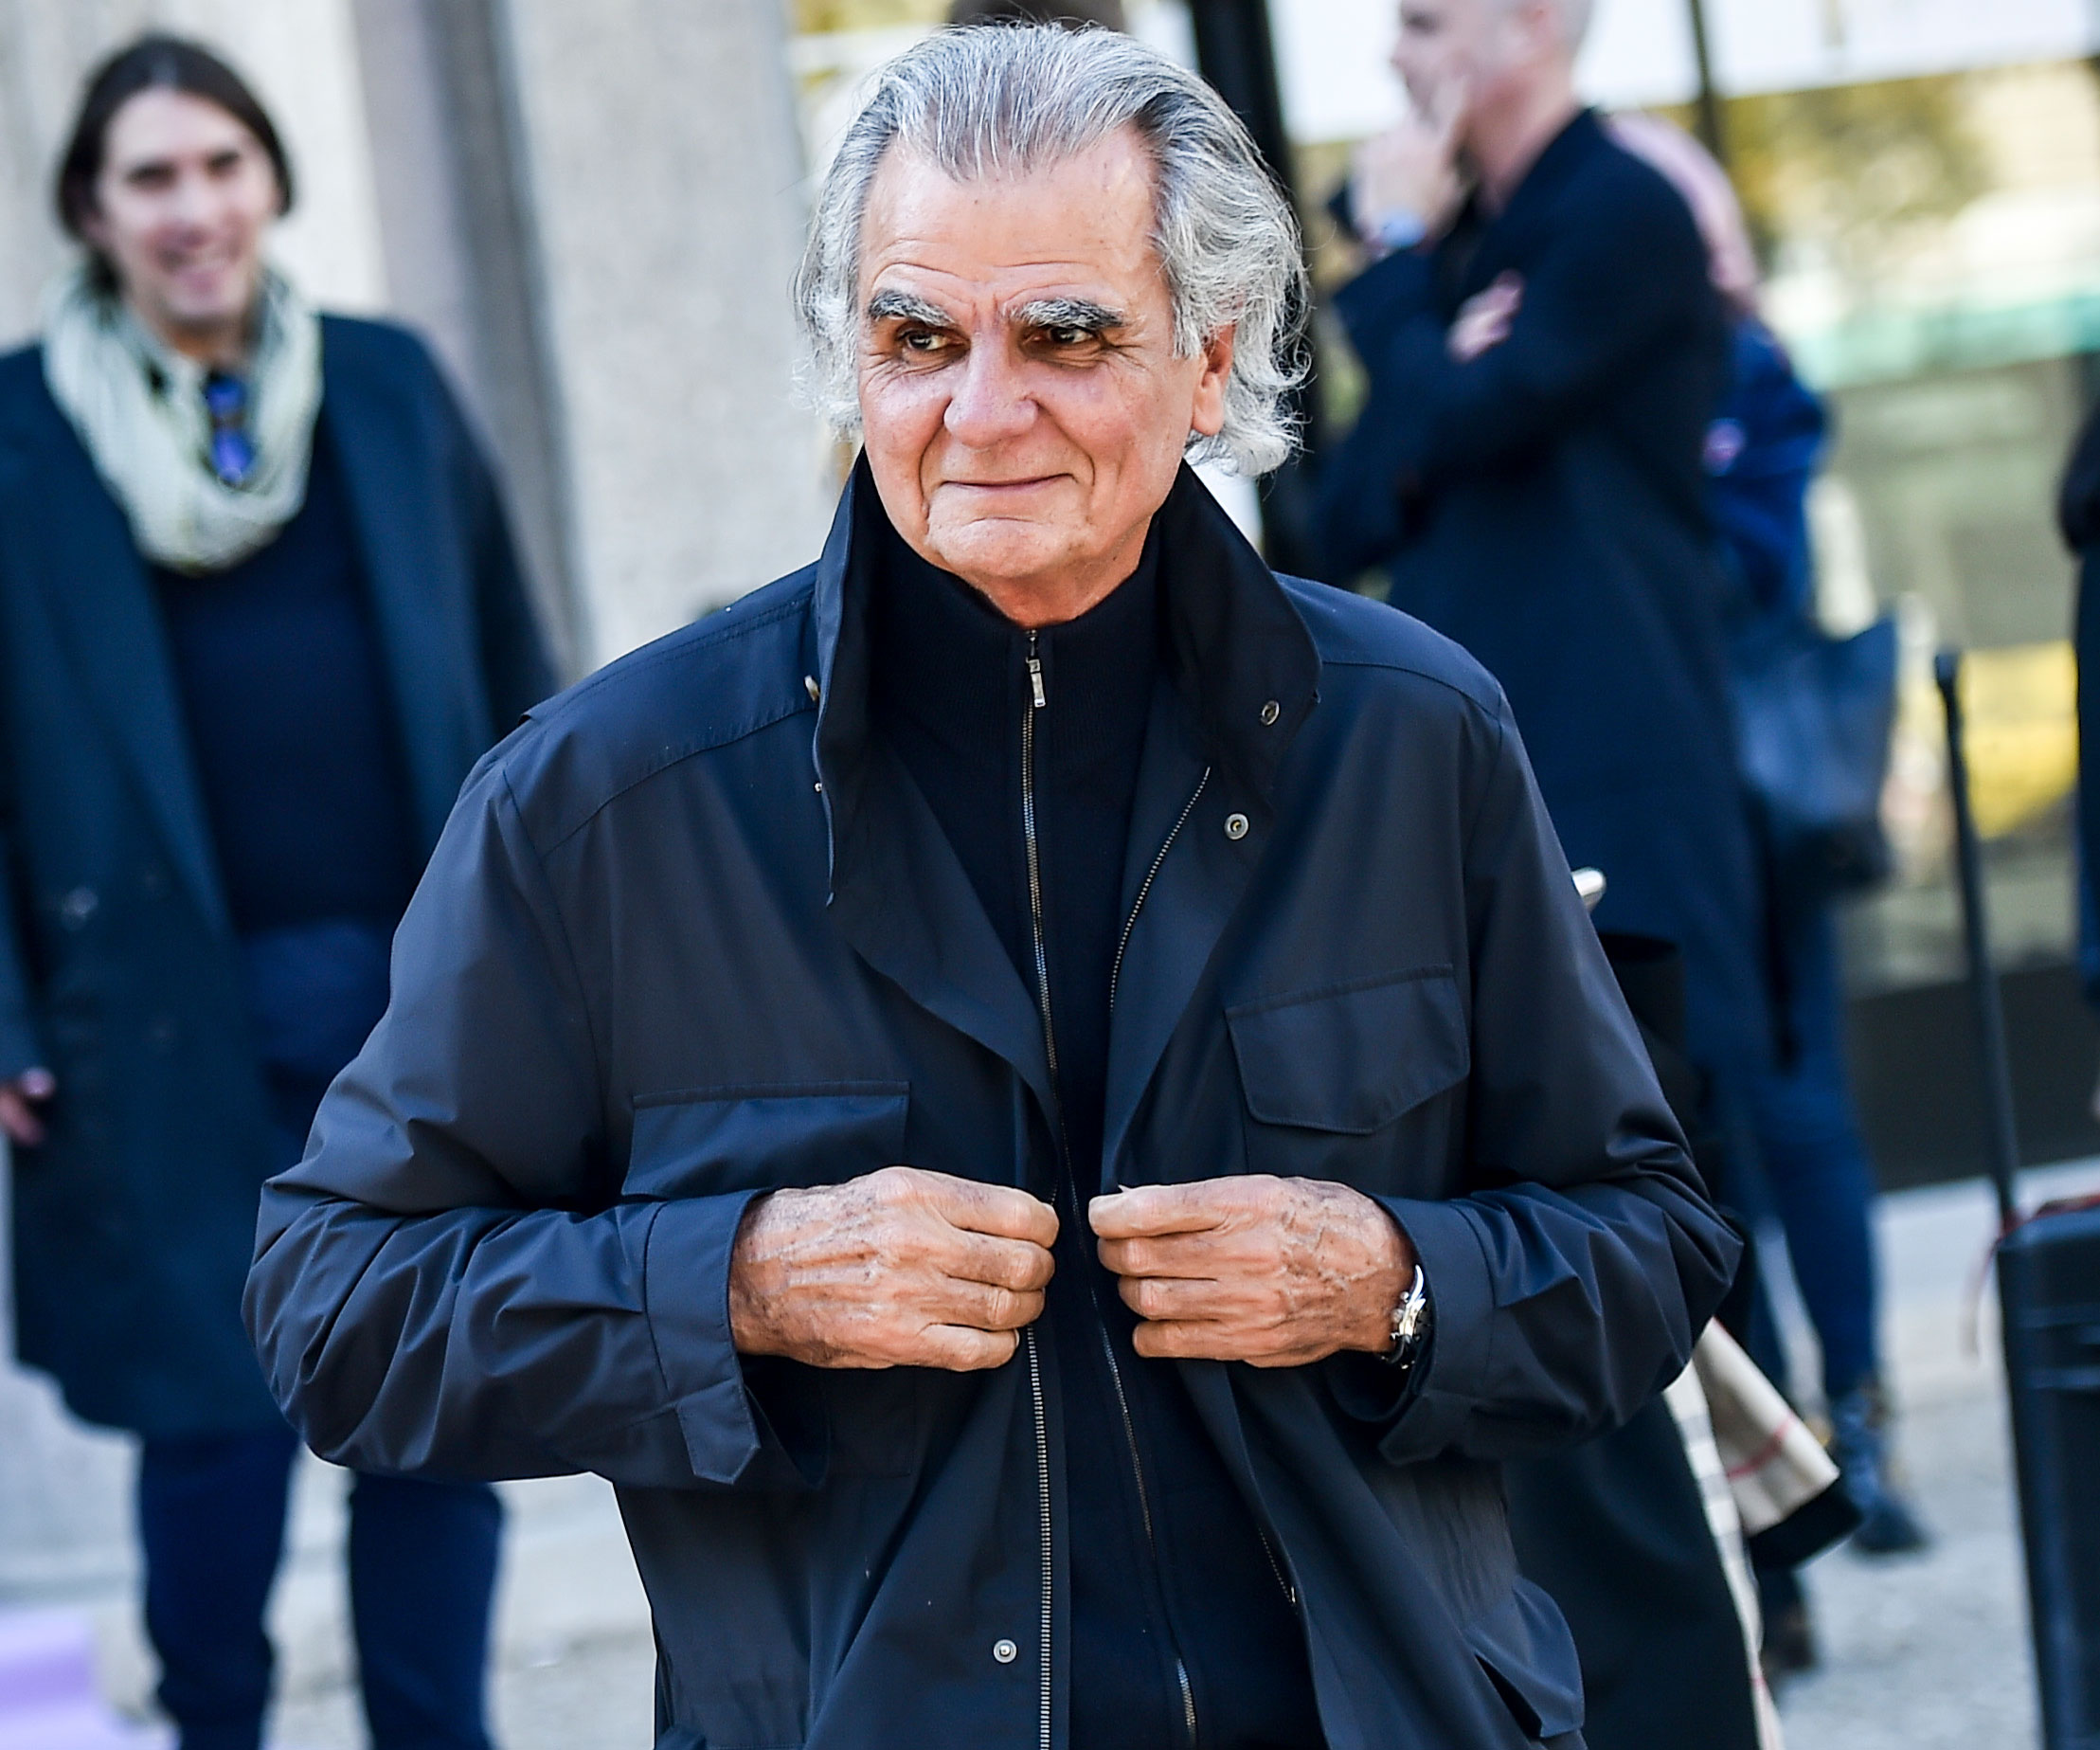 Multiple Female Models Accuse Photographer Patrick Demarchelier of Sexual Misconduct